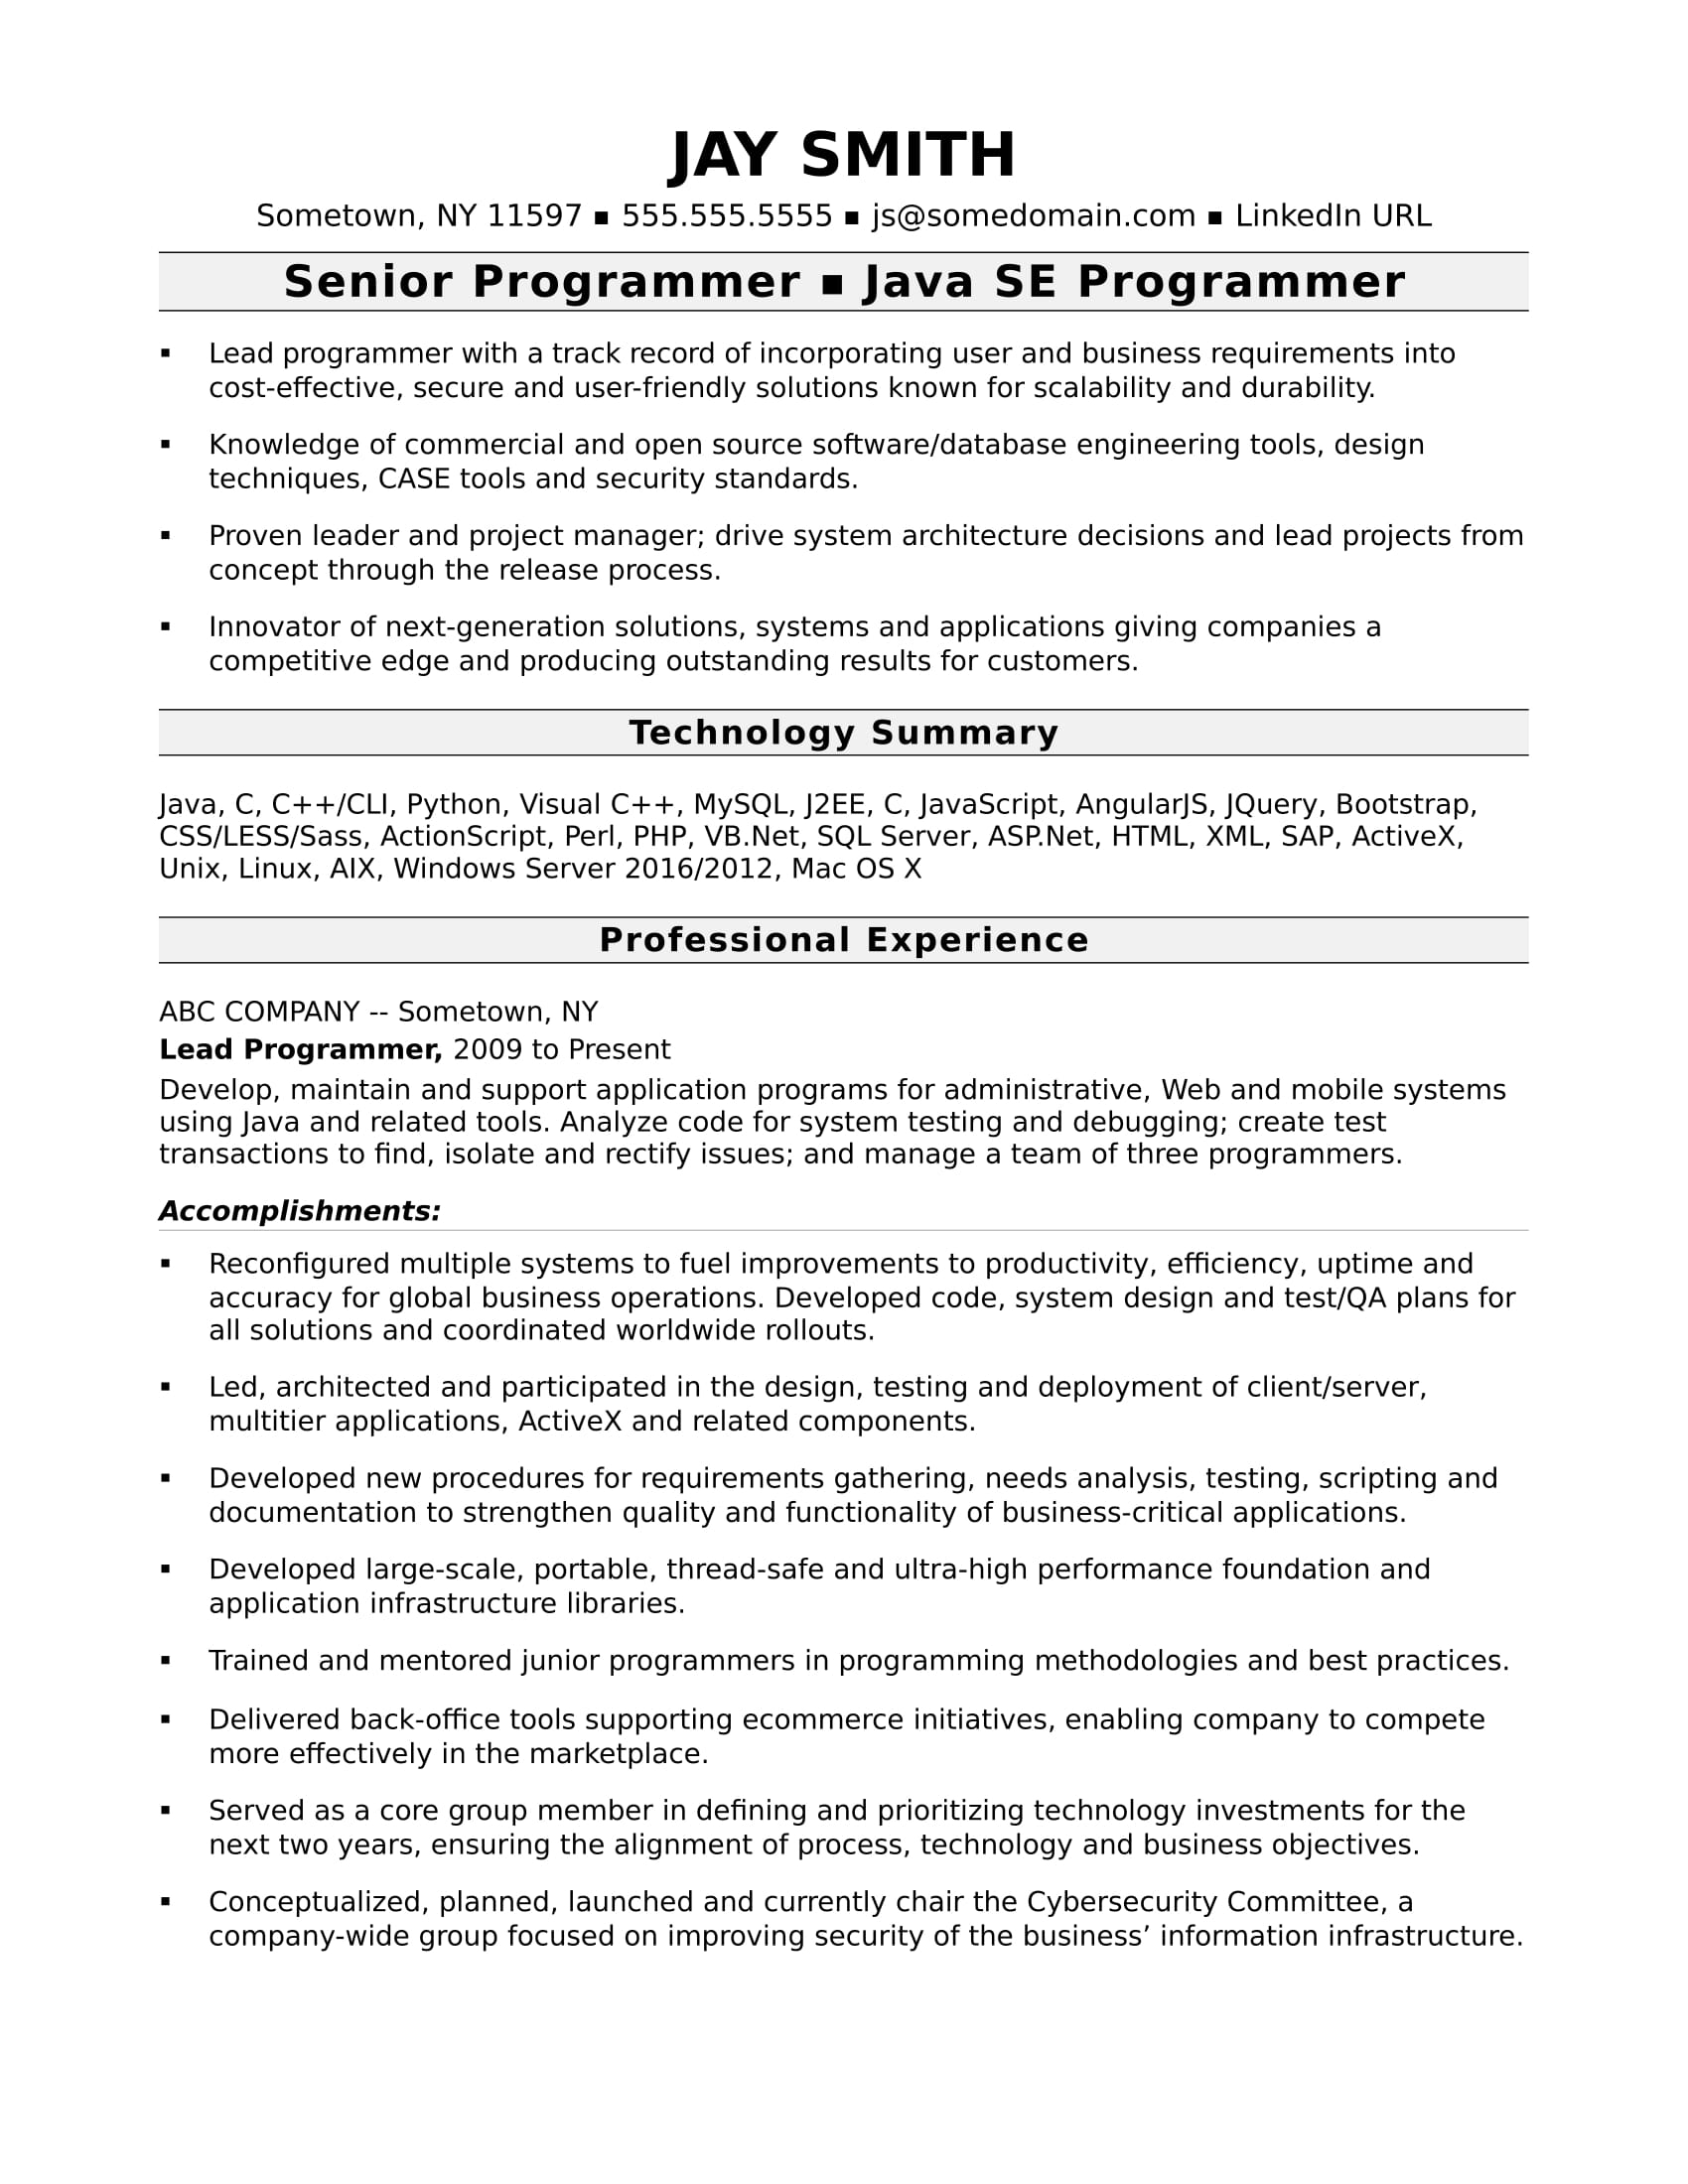 Sample Resume For An Experienced Computer Programmer  Entry Level Programmer Resume